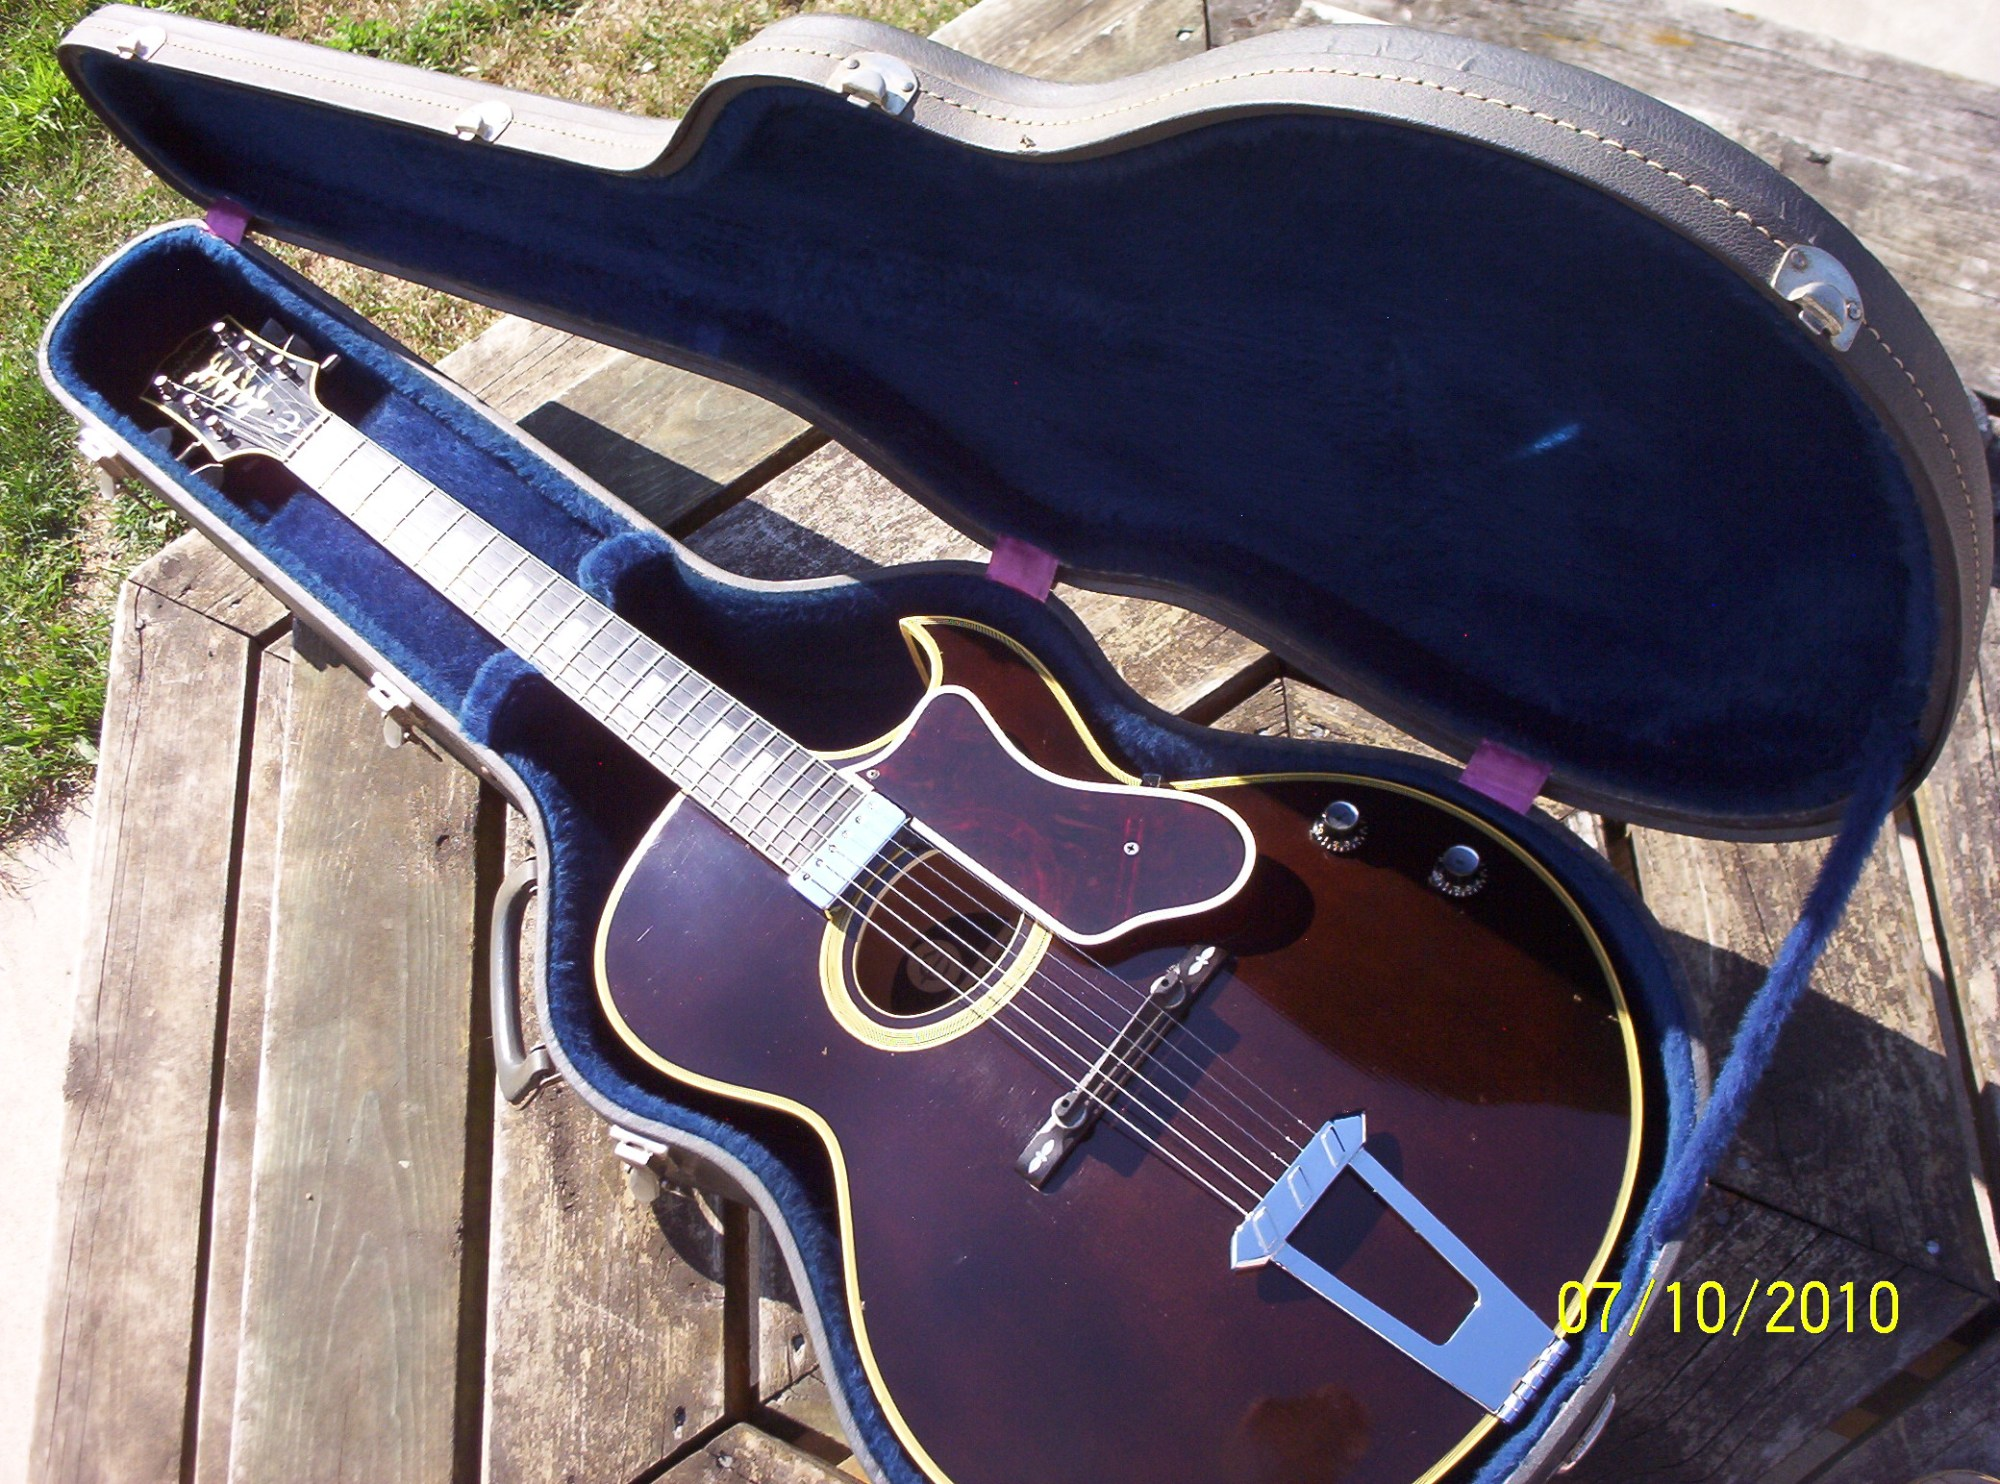 hight resolution of this guitar was previously owned by jazz guitarist edward eudimio marocco of new haven michigan and was sold to me by his guitarist son james rocco